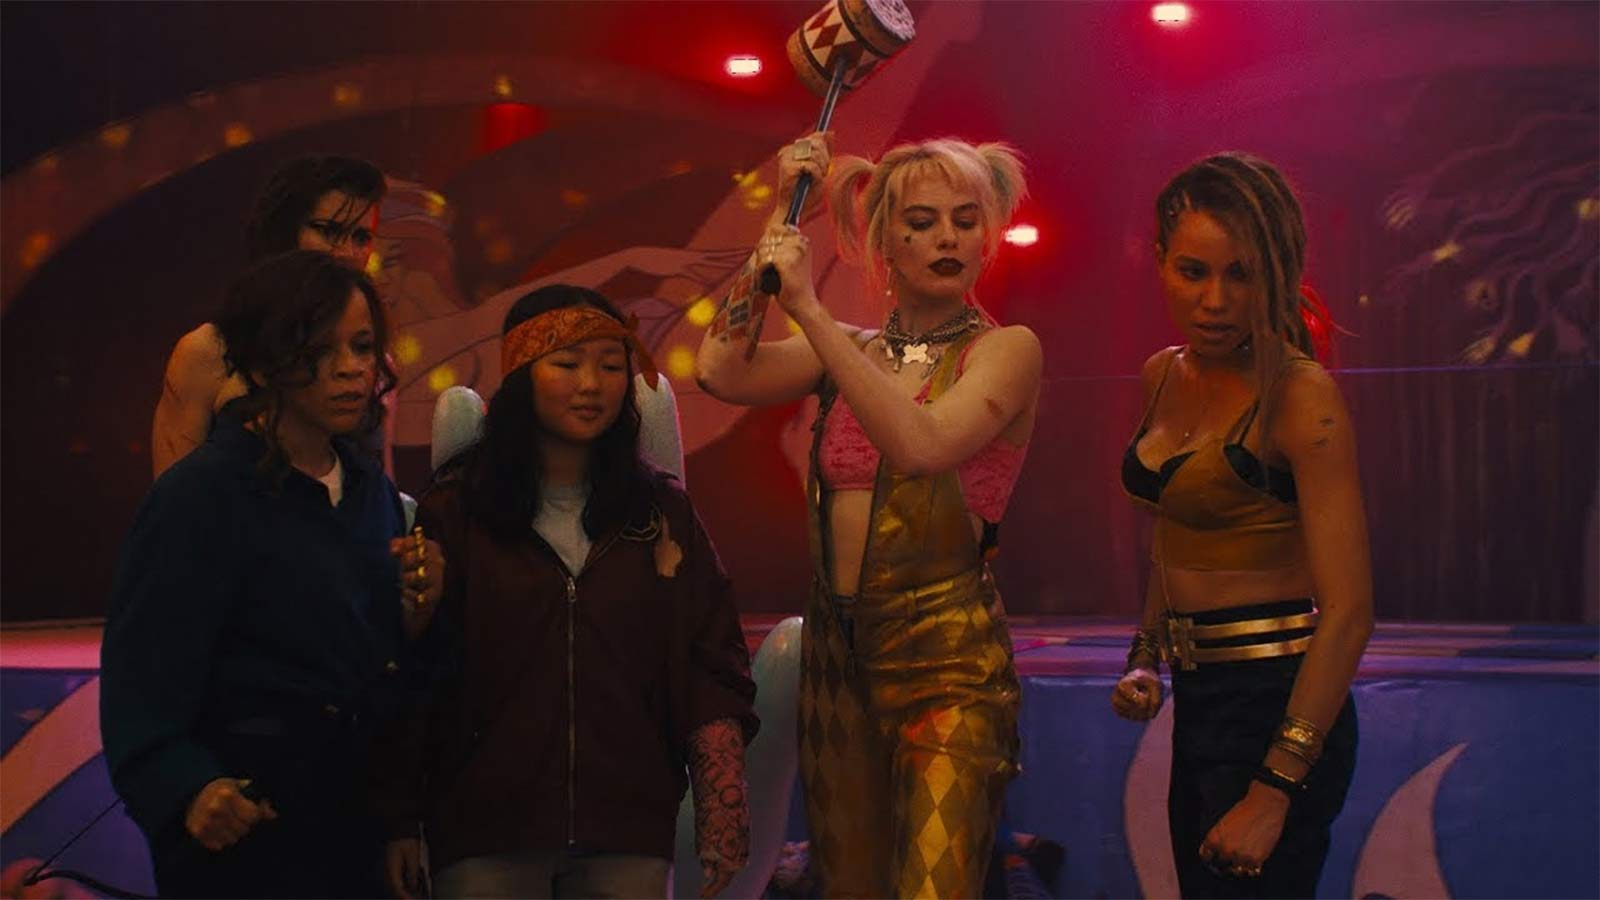 Birds Of Prey - Official Trailer